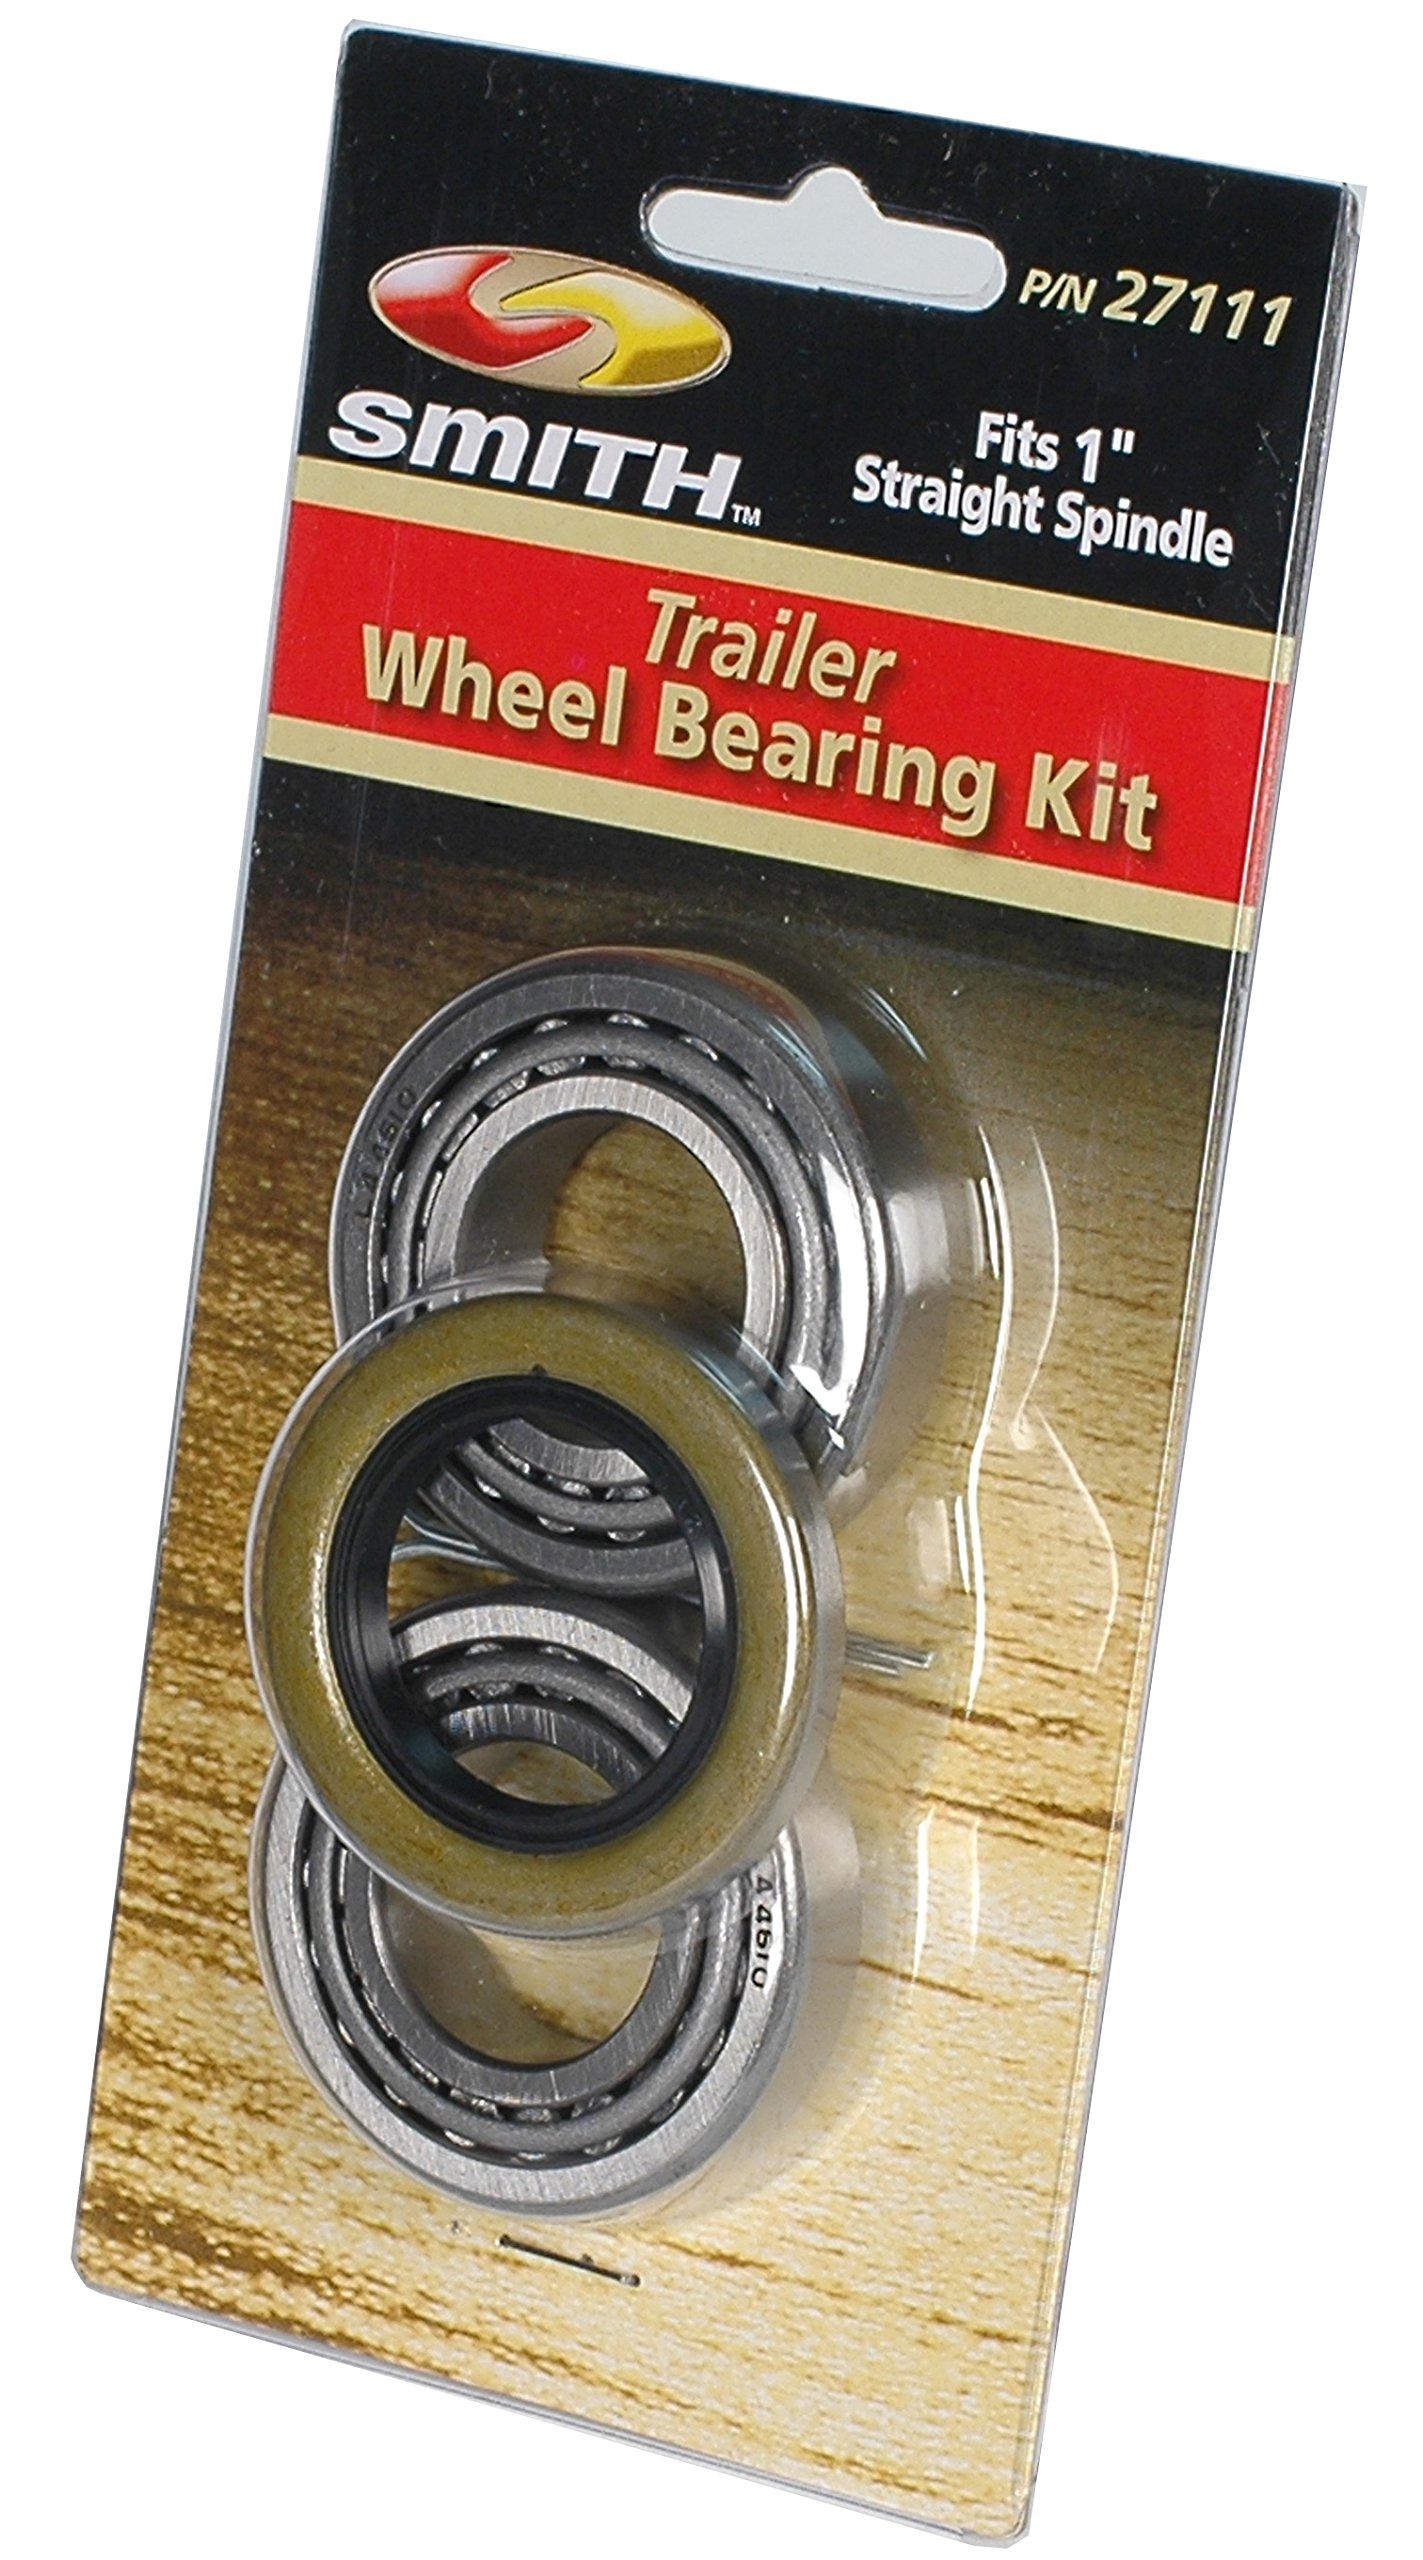 CE Smith Trailer 27111 Bearing Kit (Straight), 1''- Replacement Parts and Accessories for your Ski Boat, Fishing Boat or Sailboat Trailer